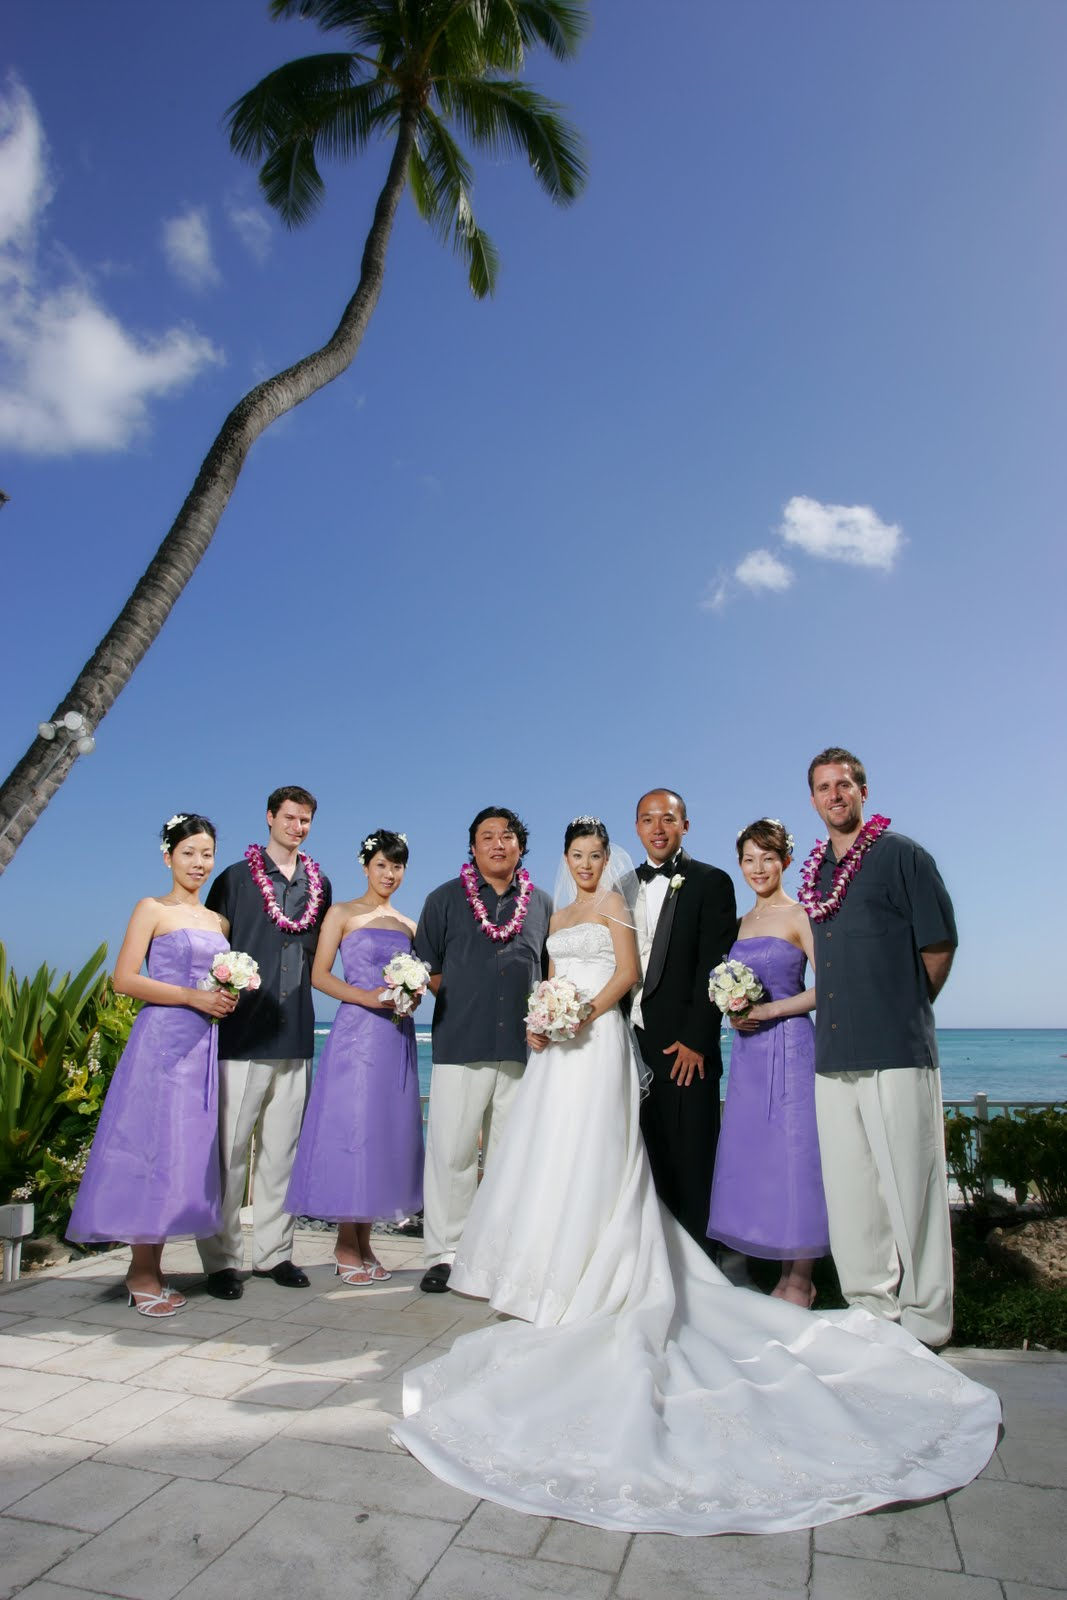 neu events\' Blog for The Knot\'s Hawaii site: May 2011